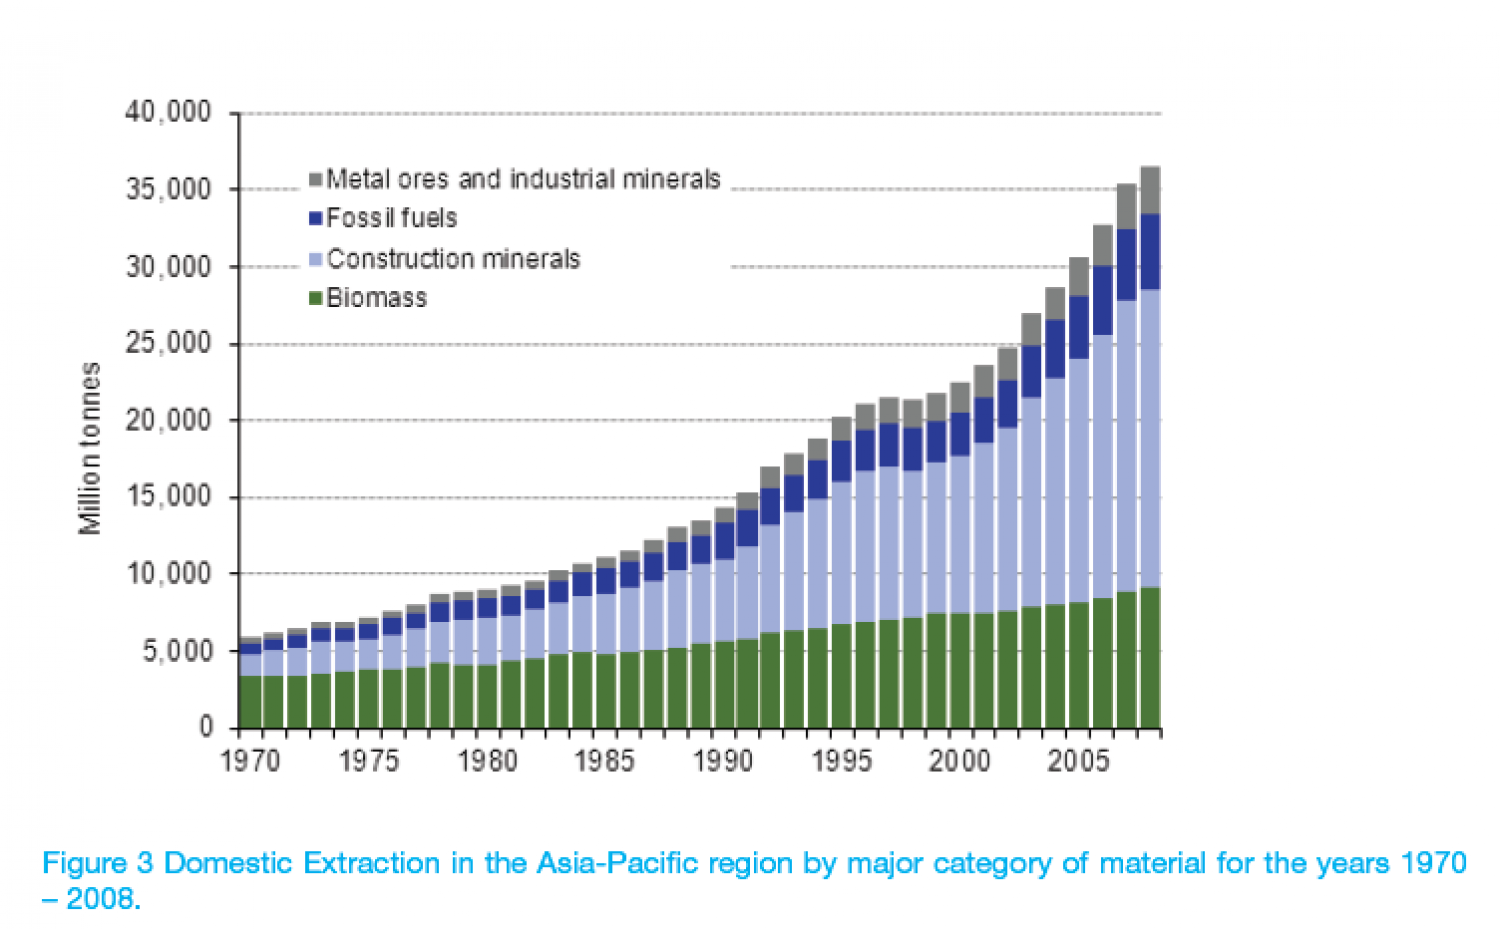 Domestic Extraction in the Asia-Pacific region by major category of material for the years 1970 – 2008. Infographic